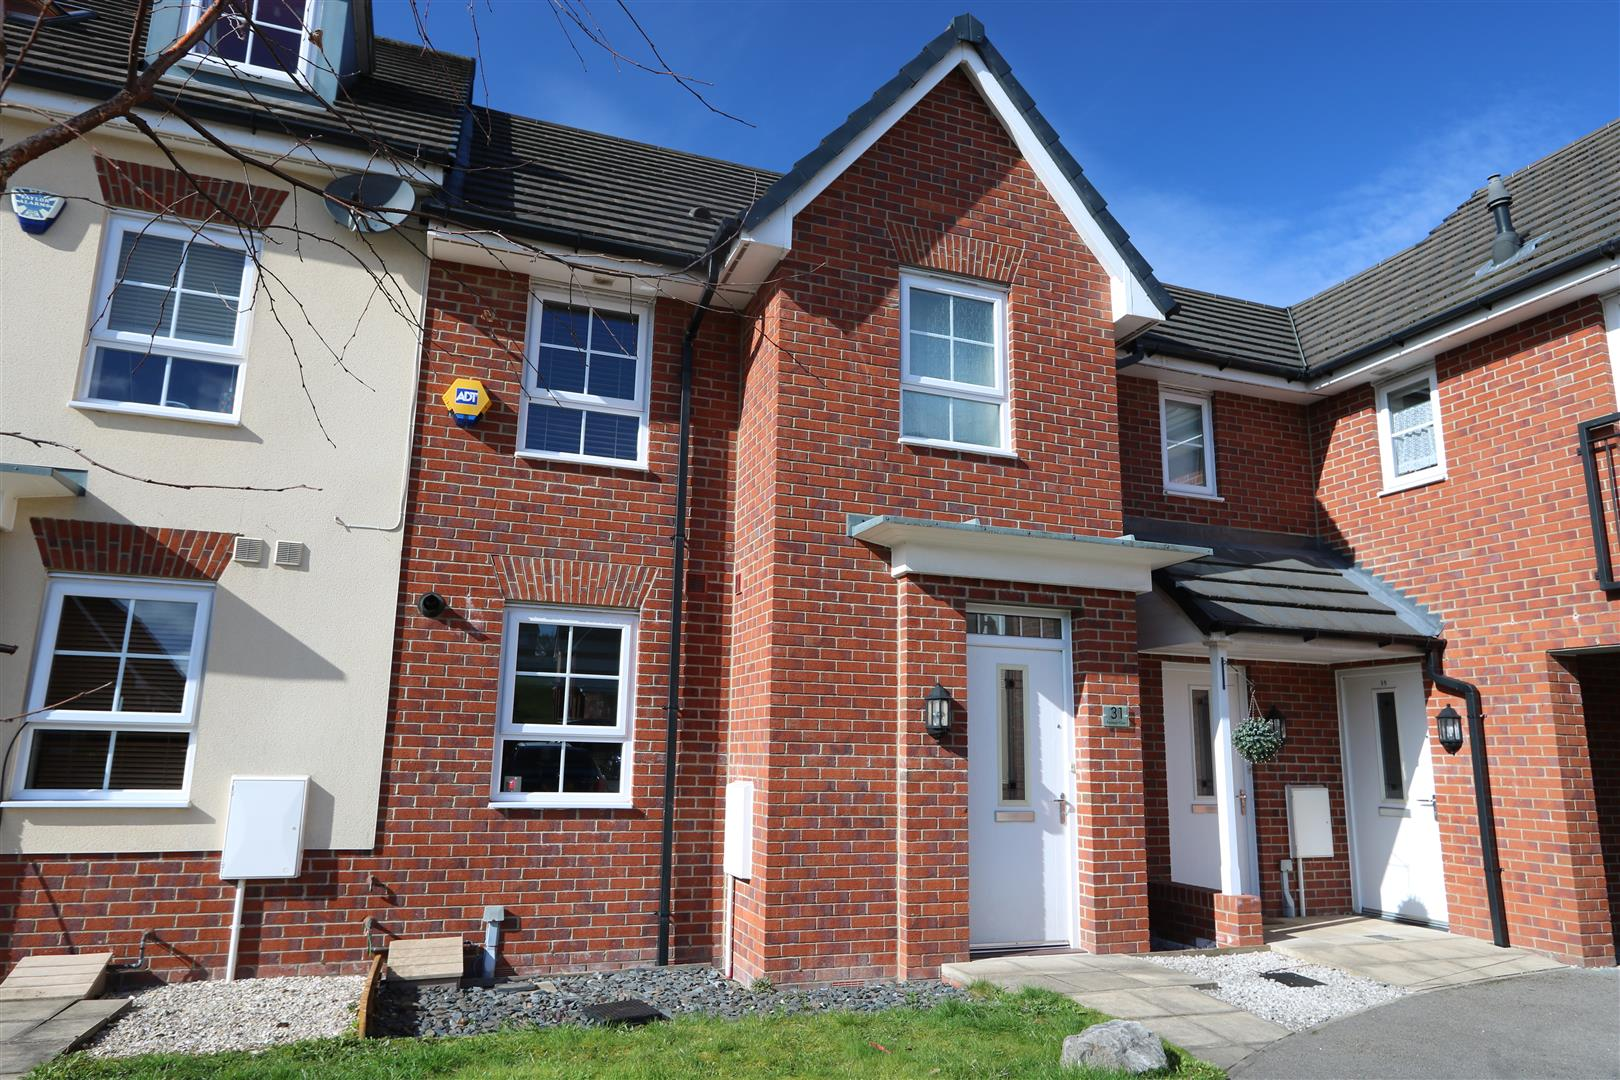 31 Rayleigh Close,, Radcliffe